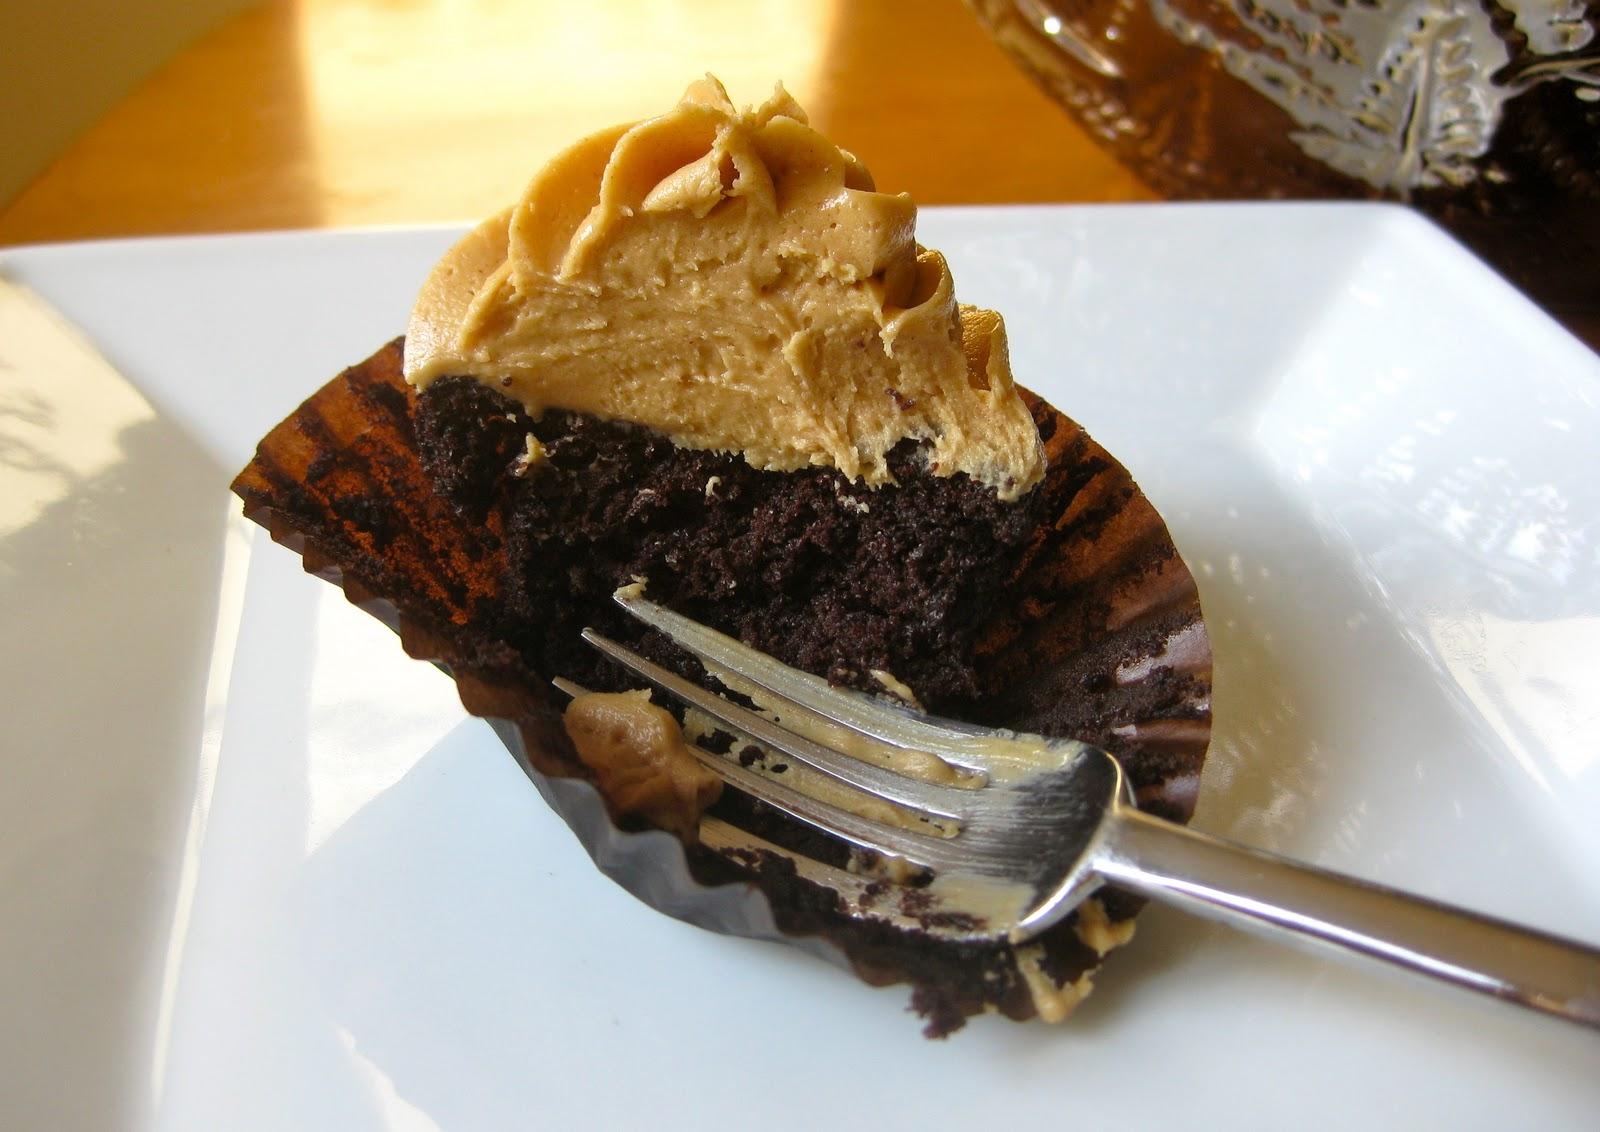 Vegan Chocolate Peanut Butter Cupcakes